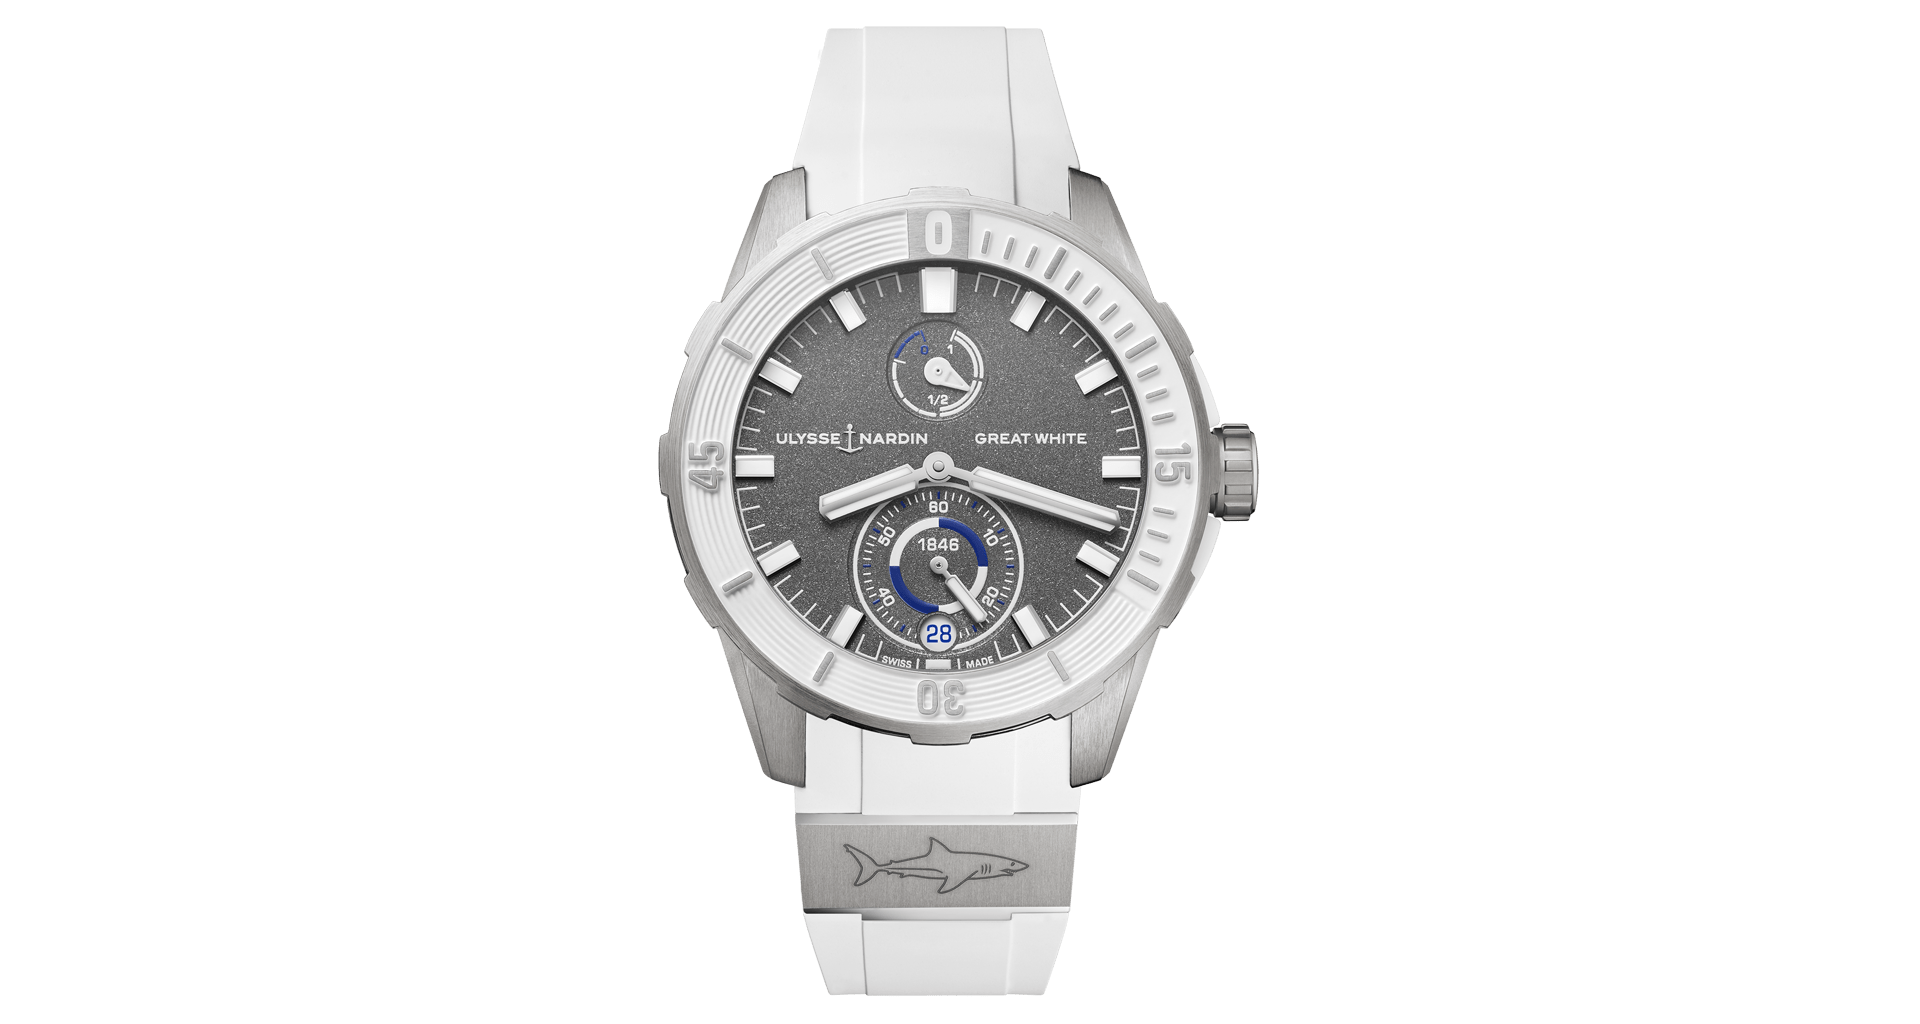 Steel Watch Ulysse Nardin Diver Great White